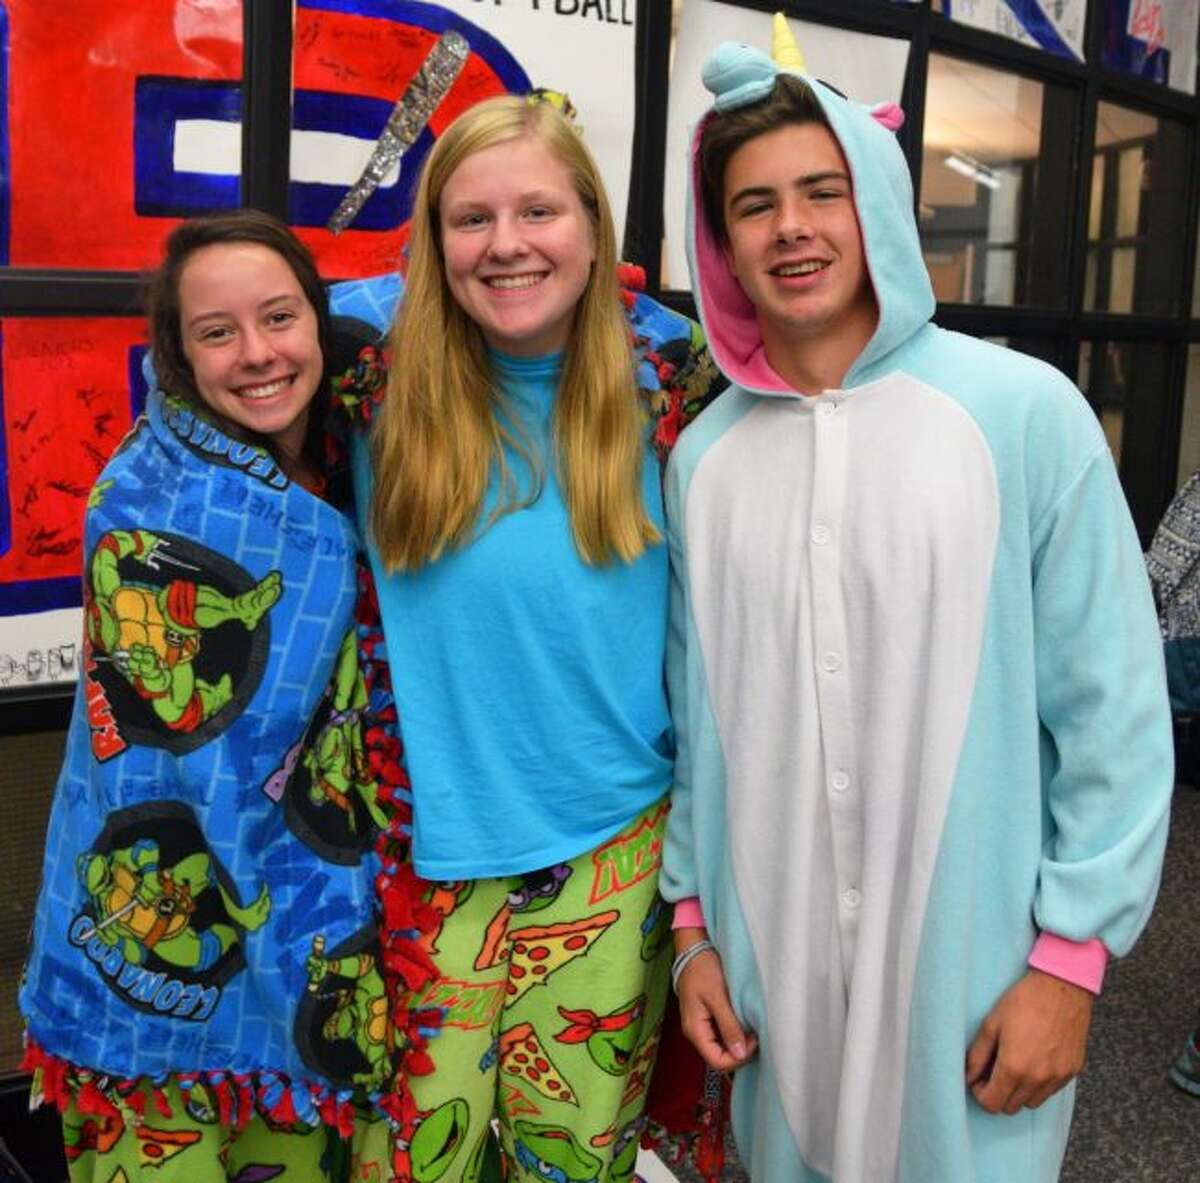 COMFY DAY: (from the left)Caitlyn Bomay, Teegan Jones and Connor McAdams show off their Comfy Day clothes during Big Rapids Public Schools' Spirit Week.